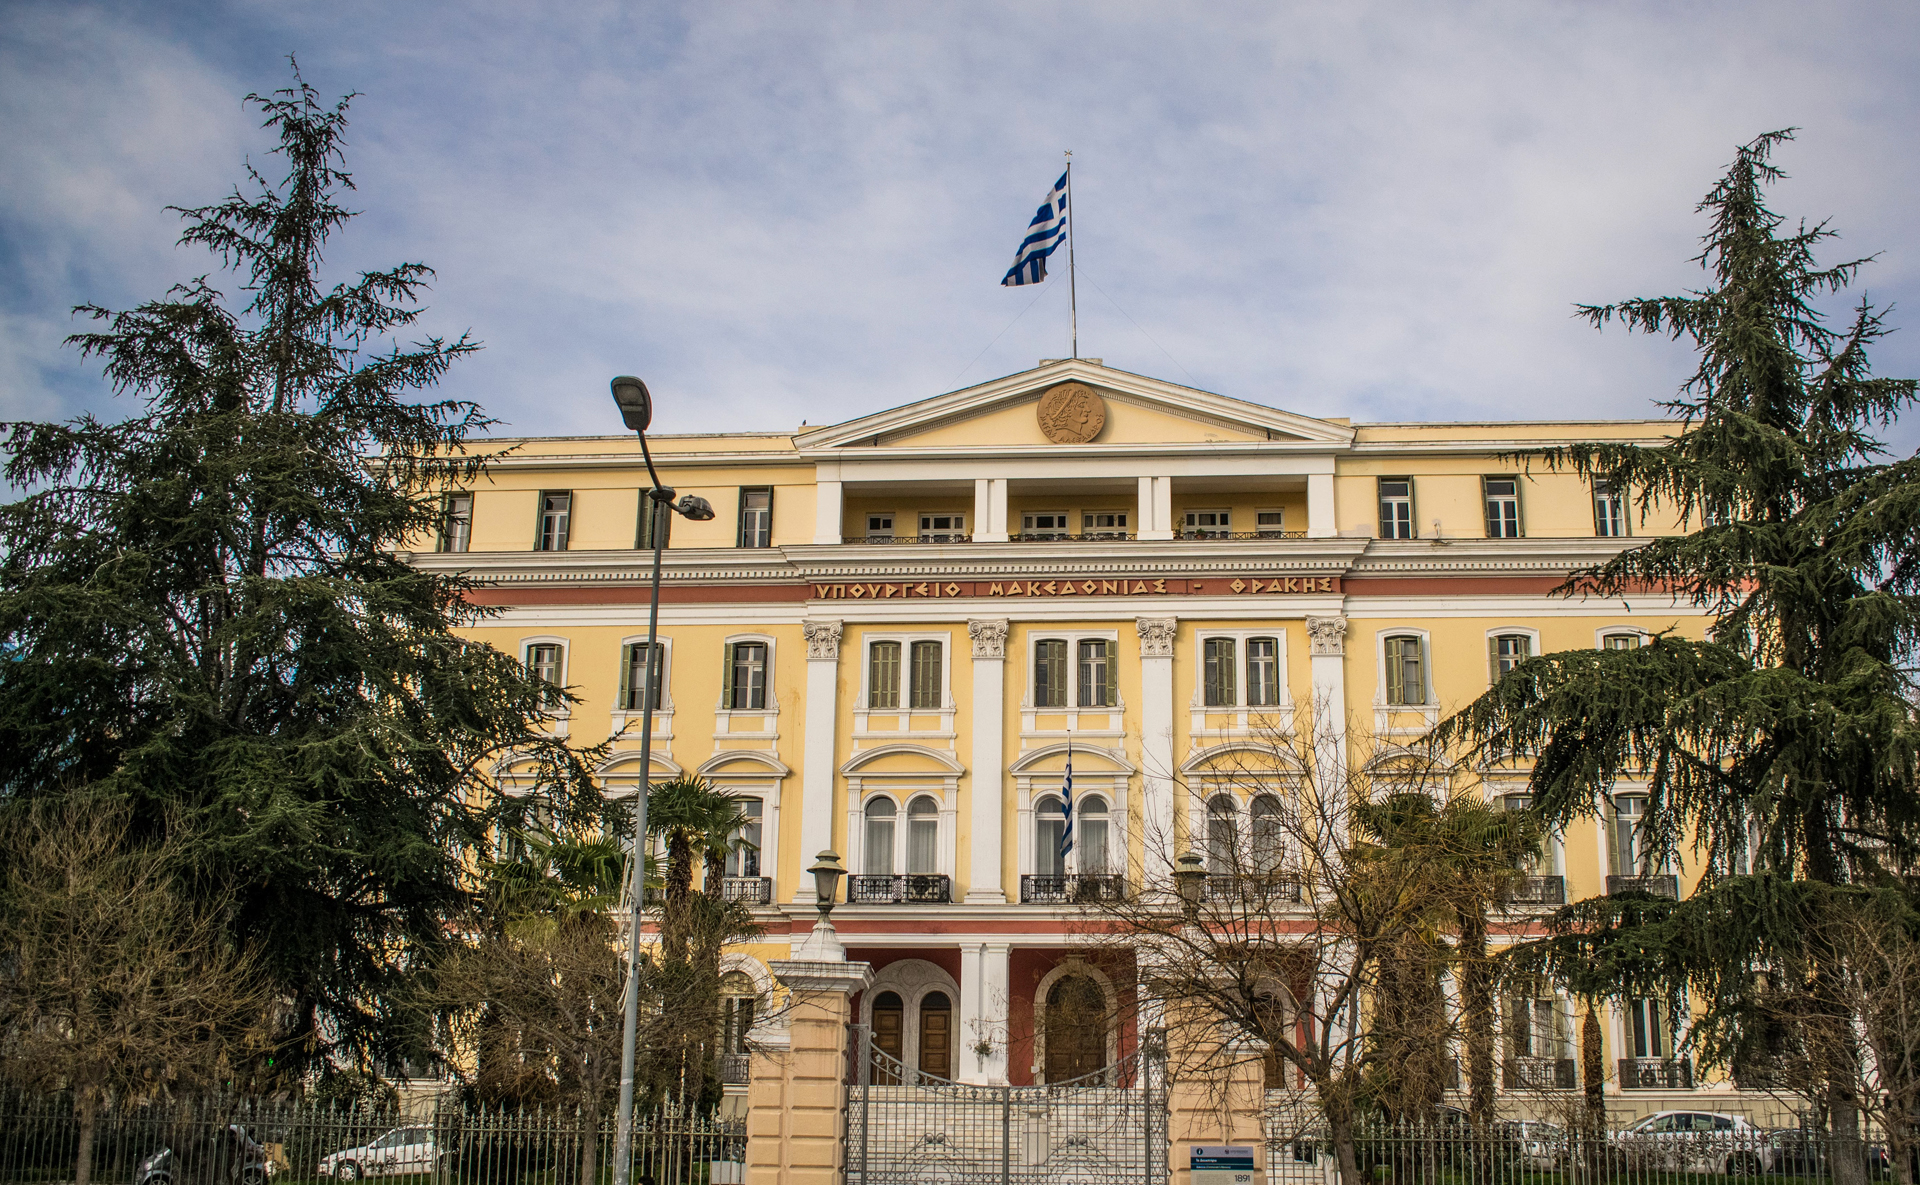 Ministry of Macedonia - Thrace in Thessaloniki, Greece.